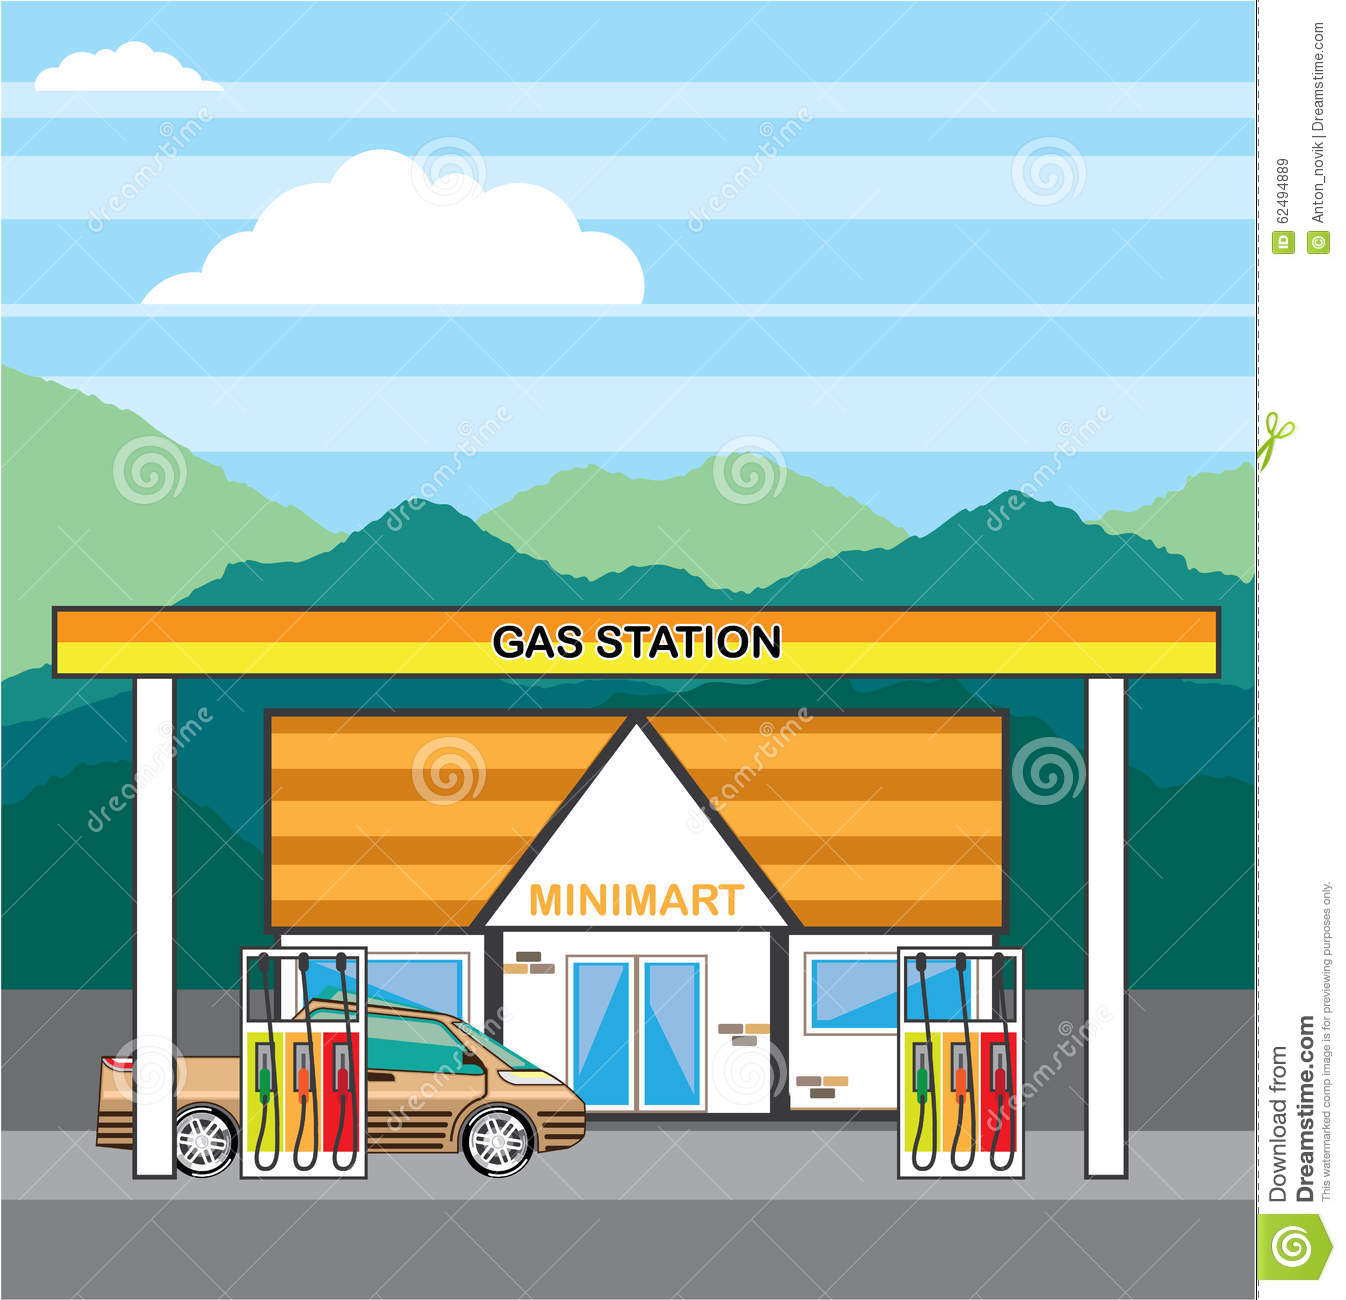 How to Write a Business Plan for a Gas Station